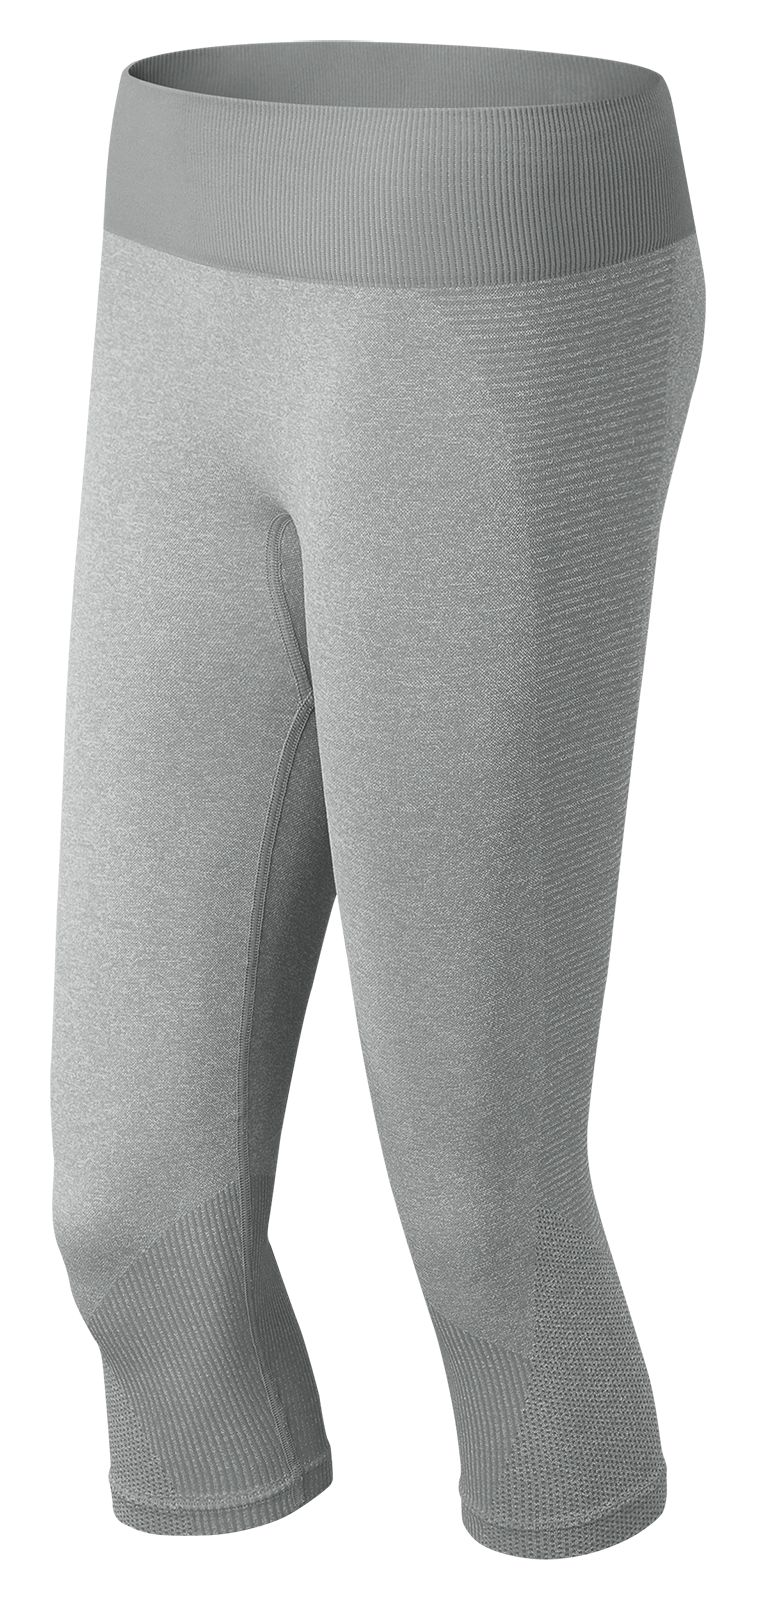 NB J.Crew M4M Seamless Capri, Athletic Grey